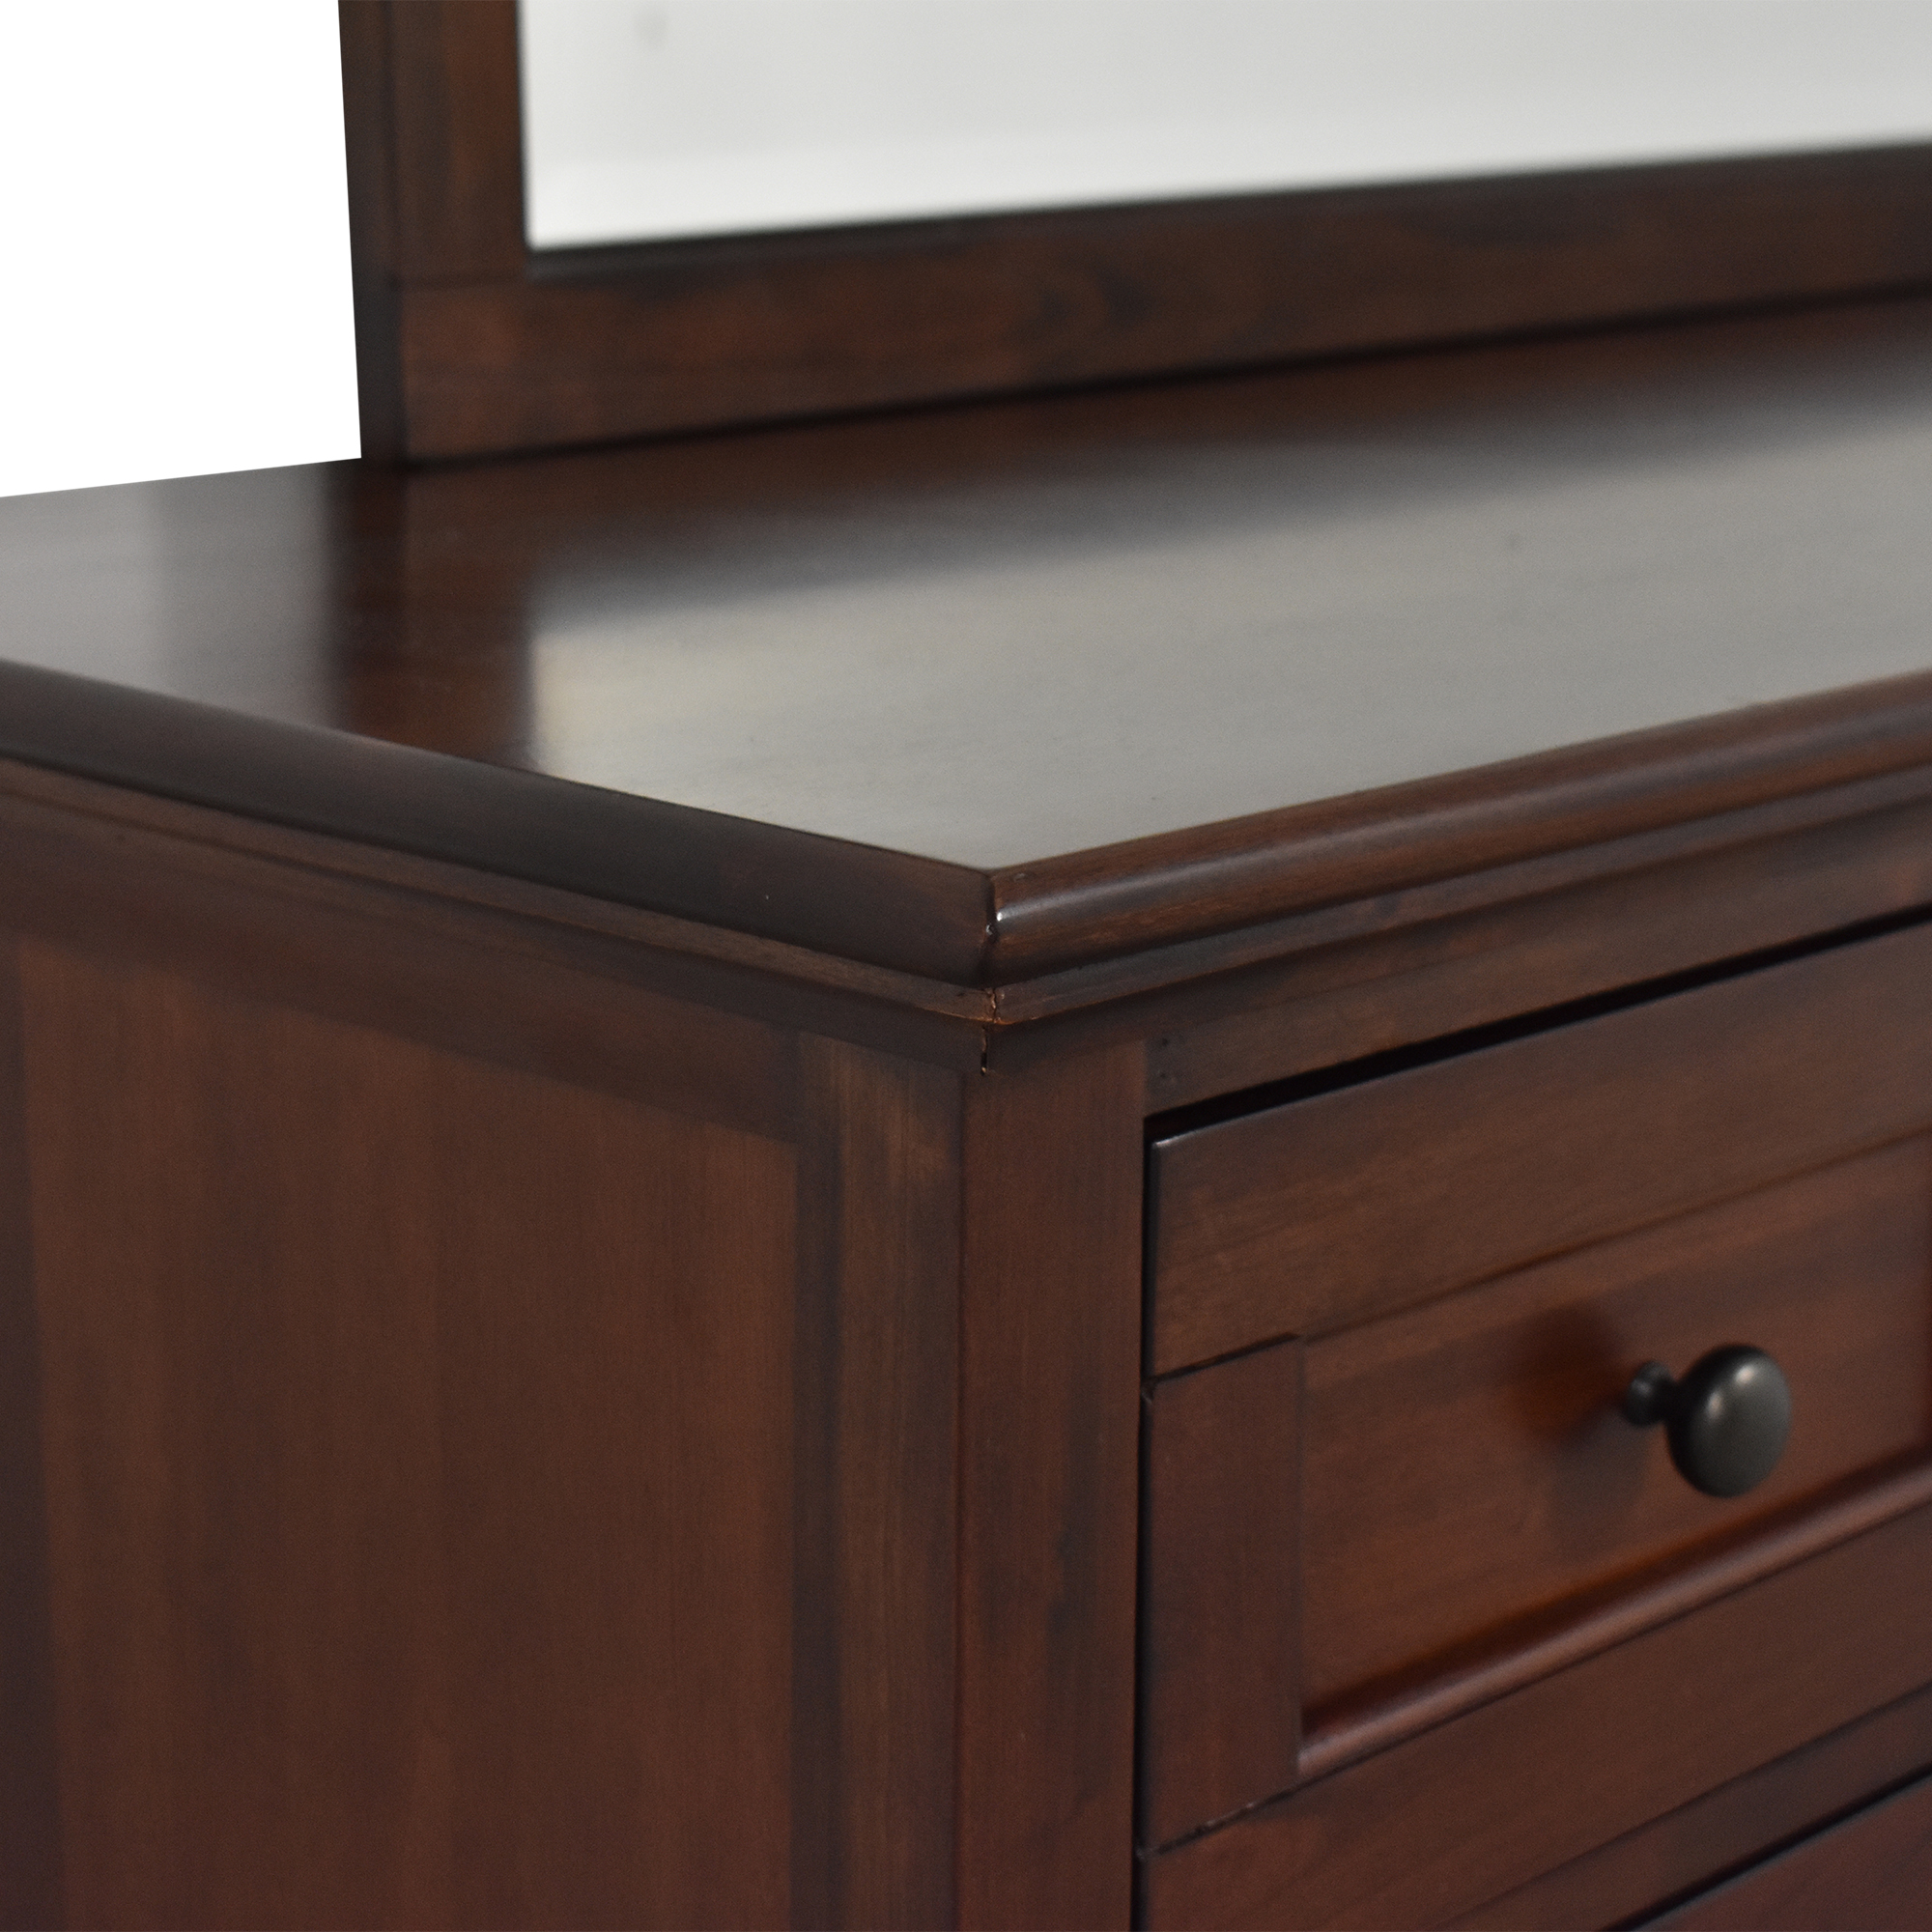 A-America Wood Furniture A-America Westlake Bedroom Dresser with Mirror for sale